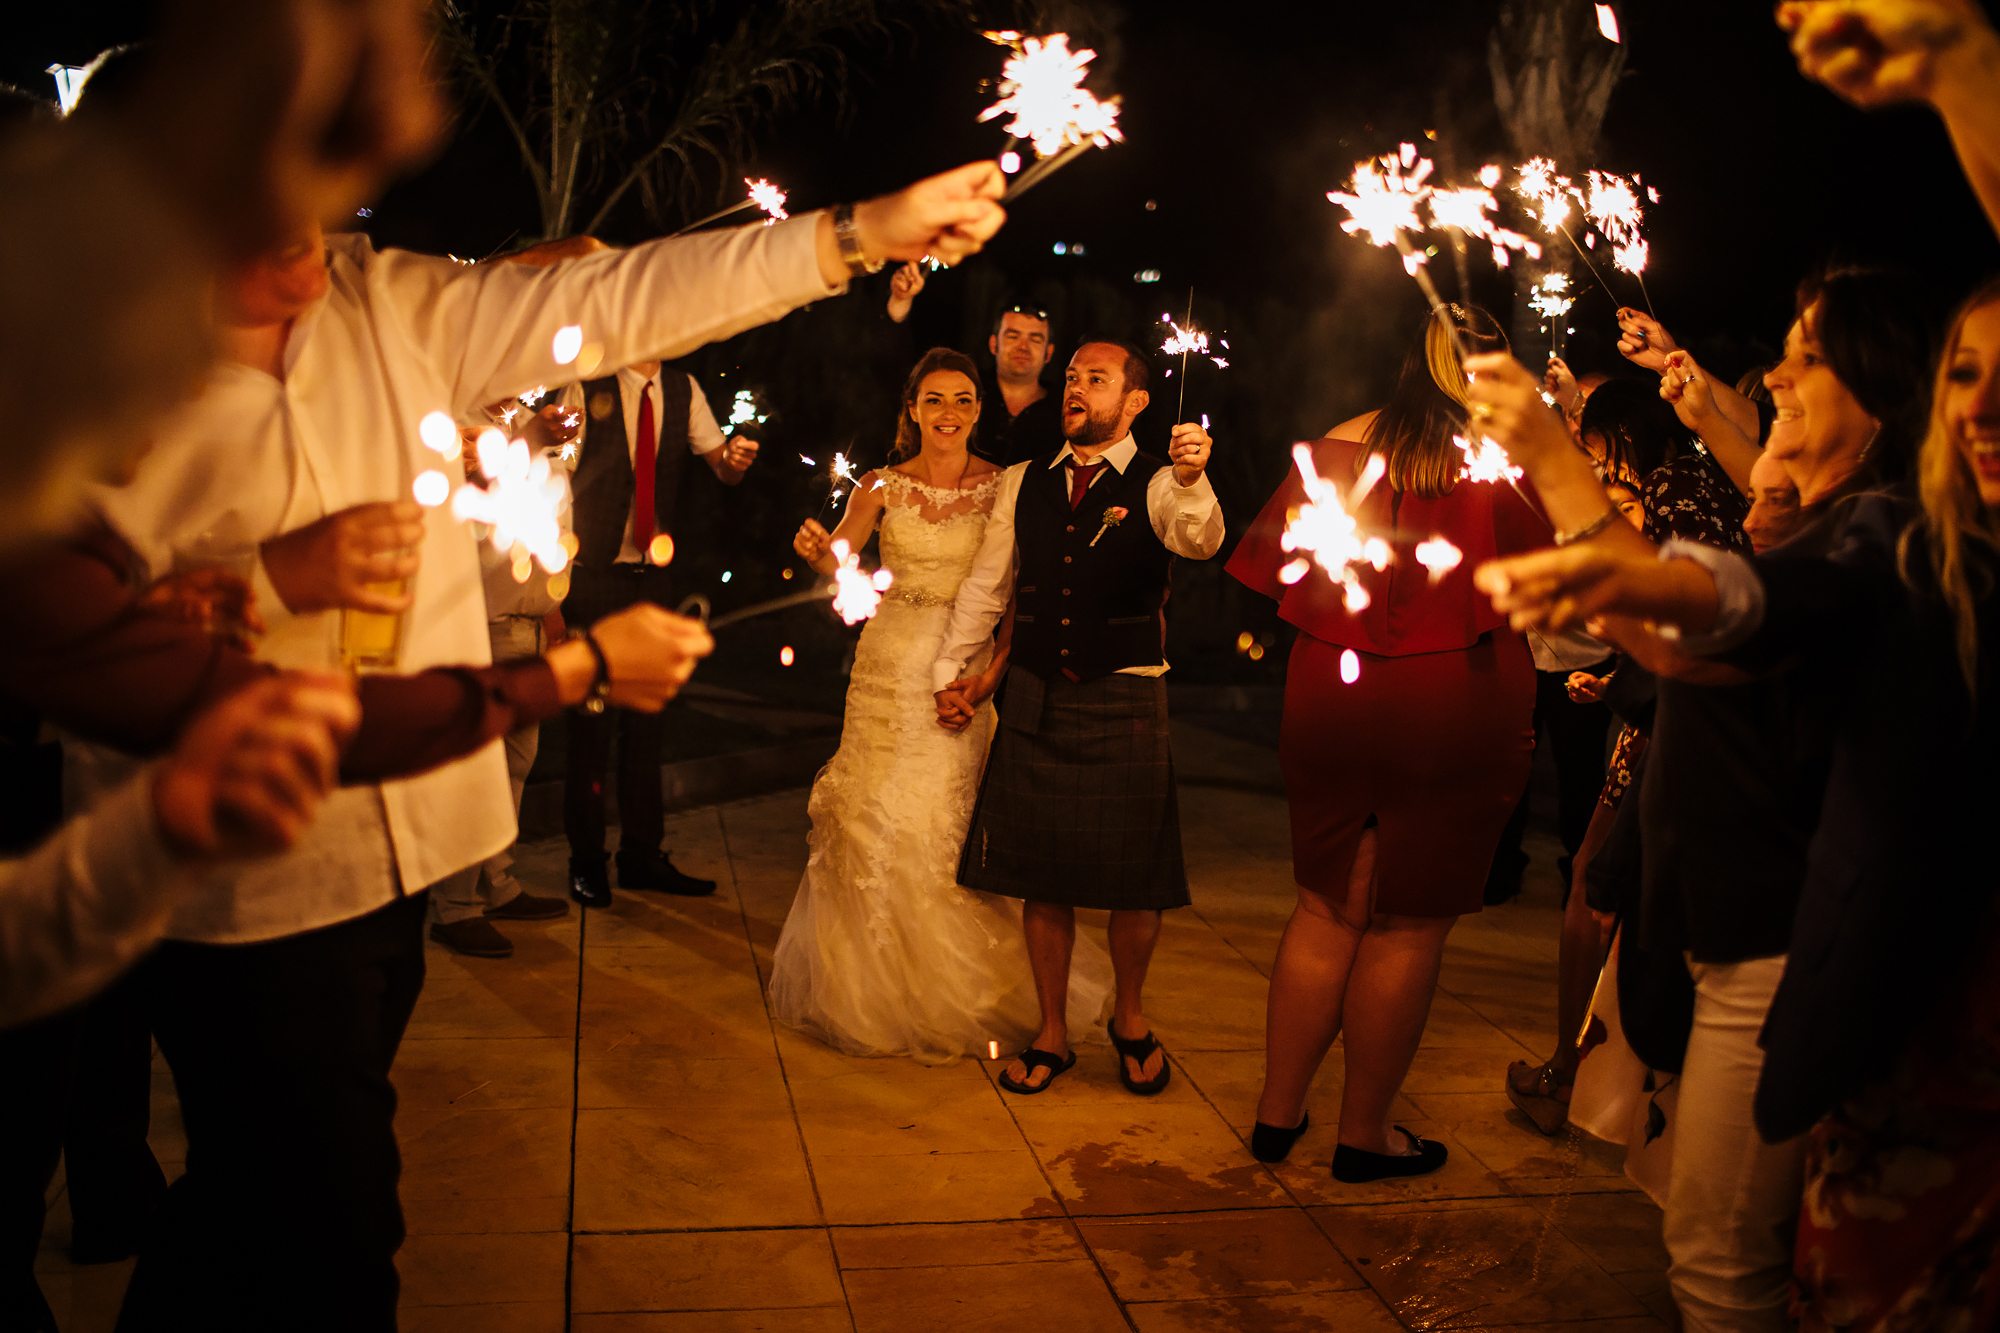 Bride and groom with sparklers at a wedding